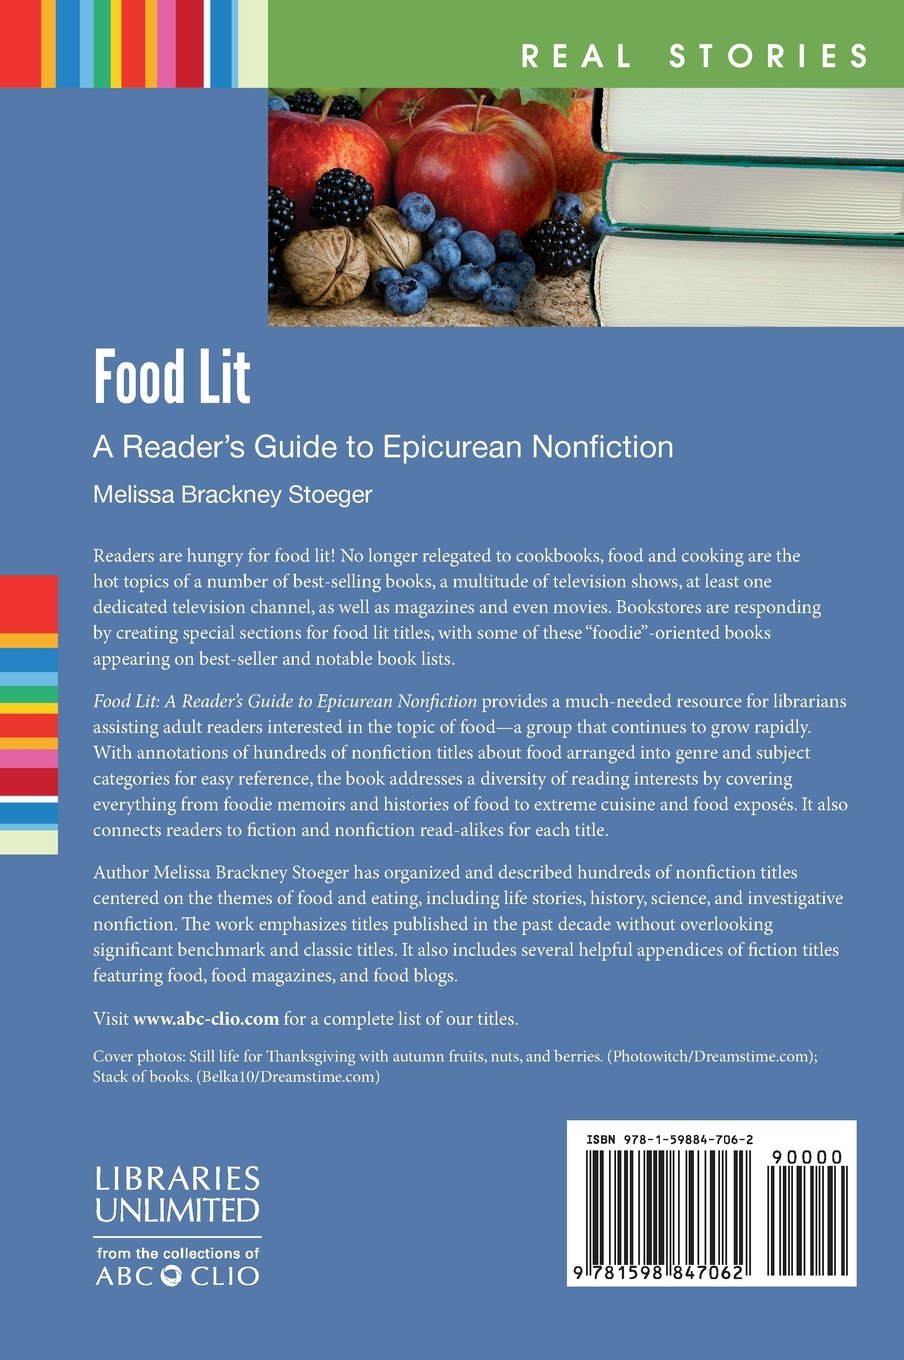 Food Lit: A Reader's Guide to Epicurean Nonfiction (Real Stories)